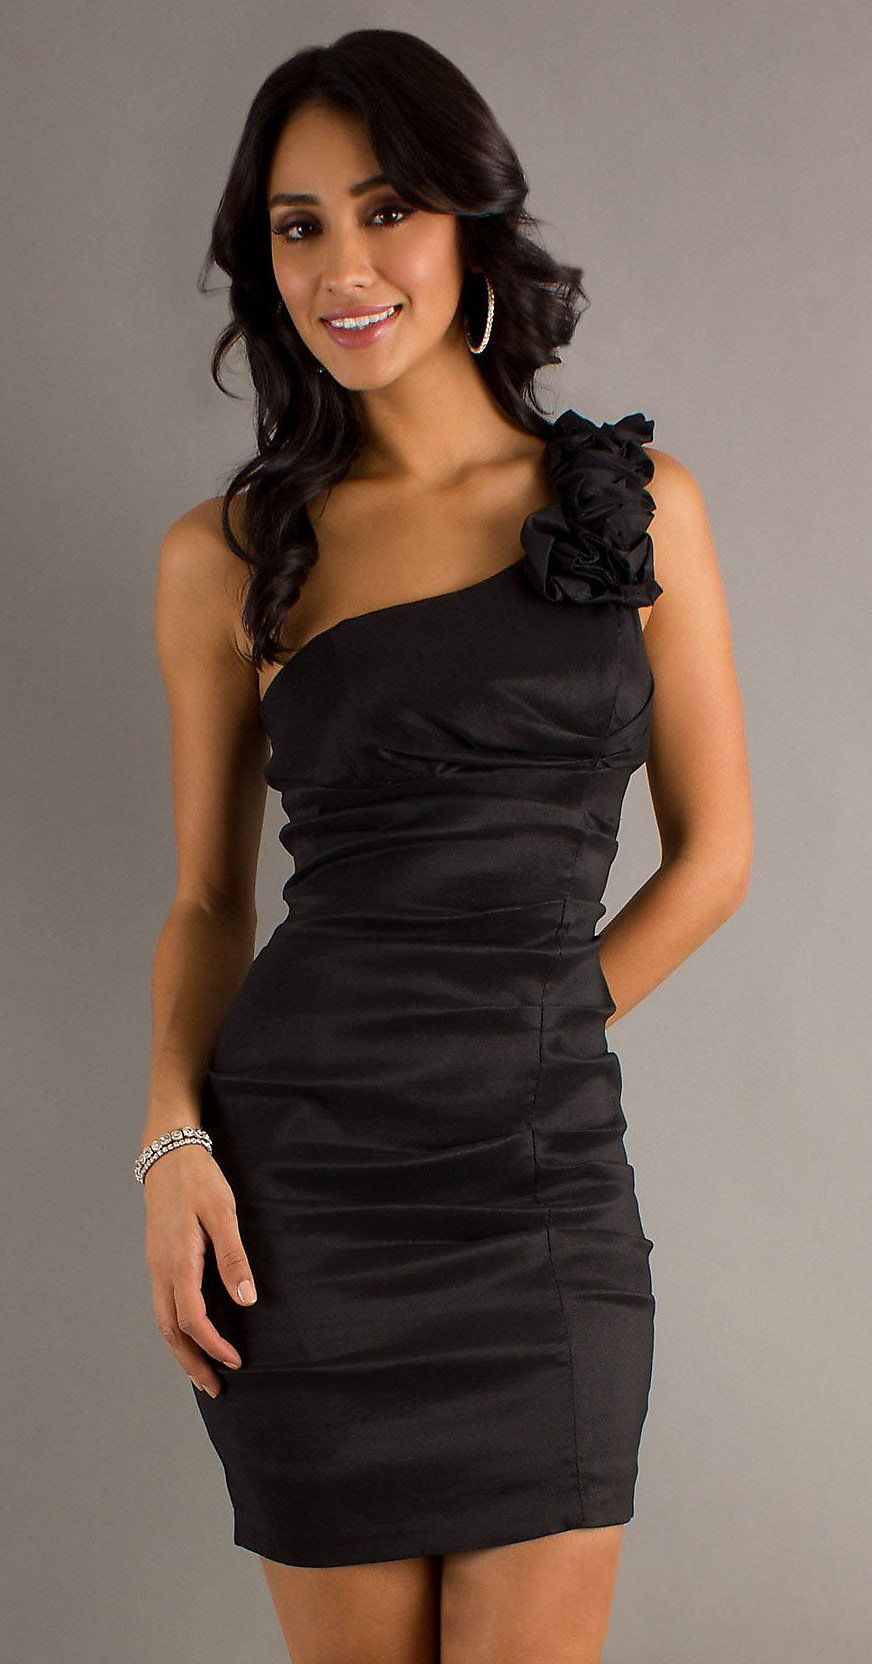 Short black cocktail gown one strap tight fitting above knee